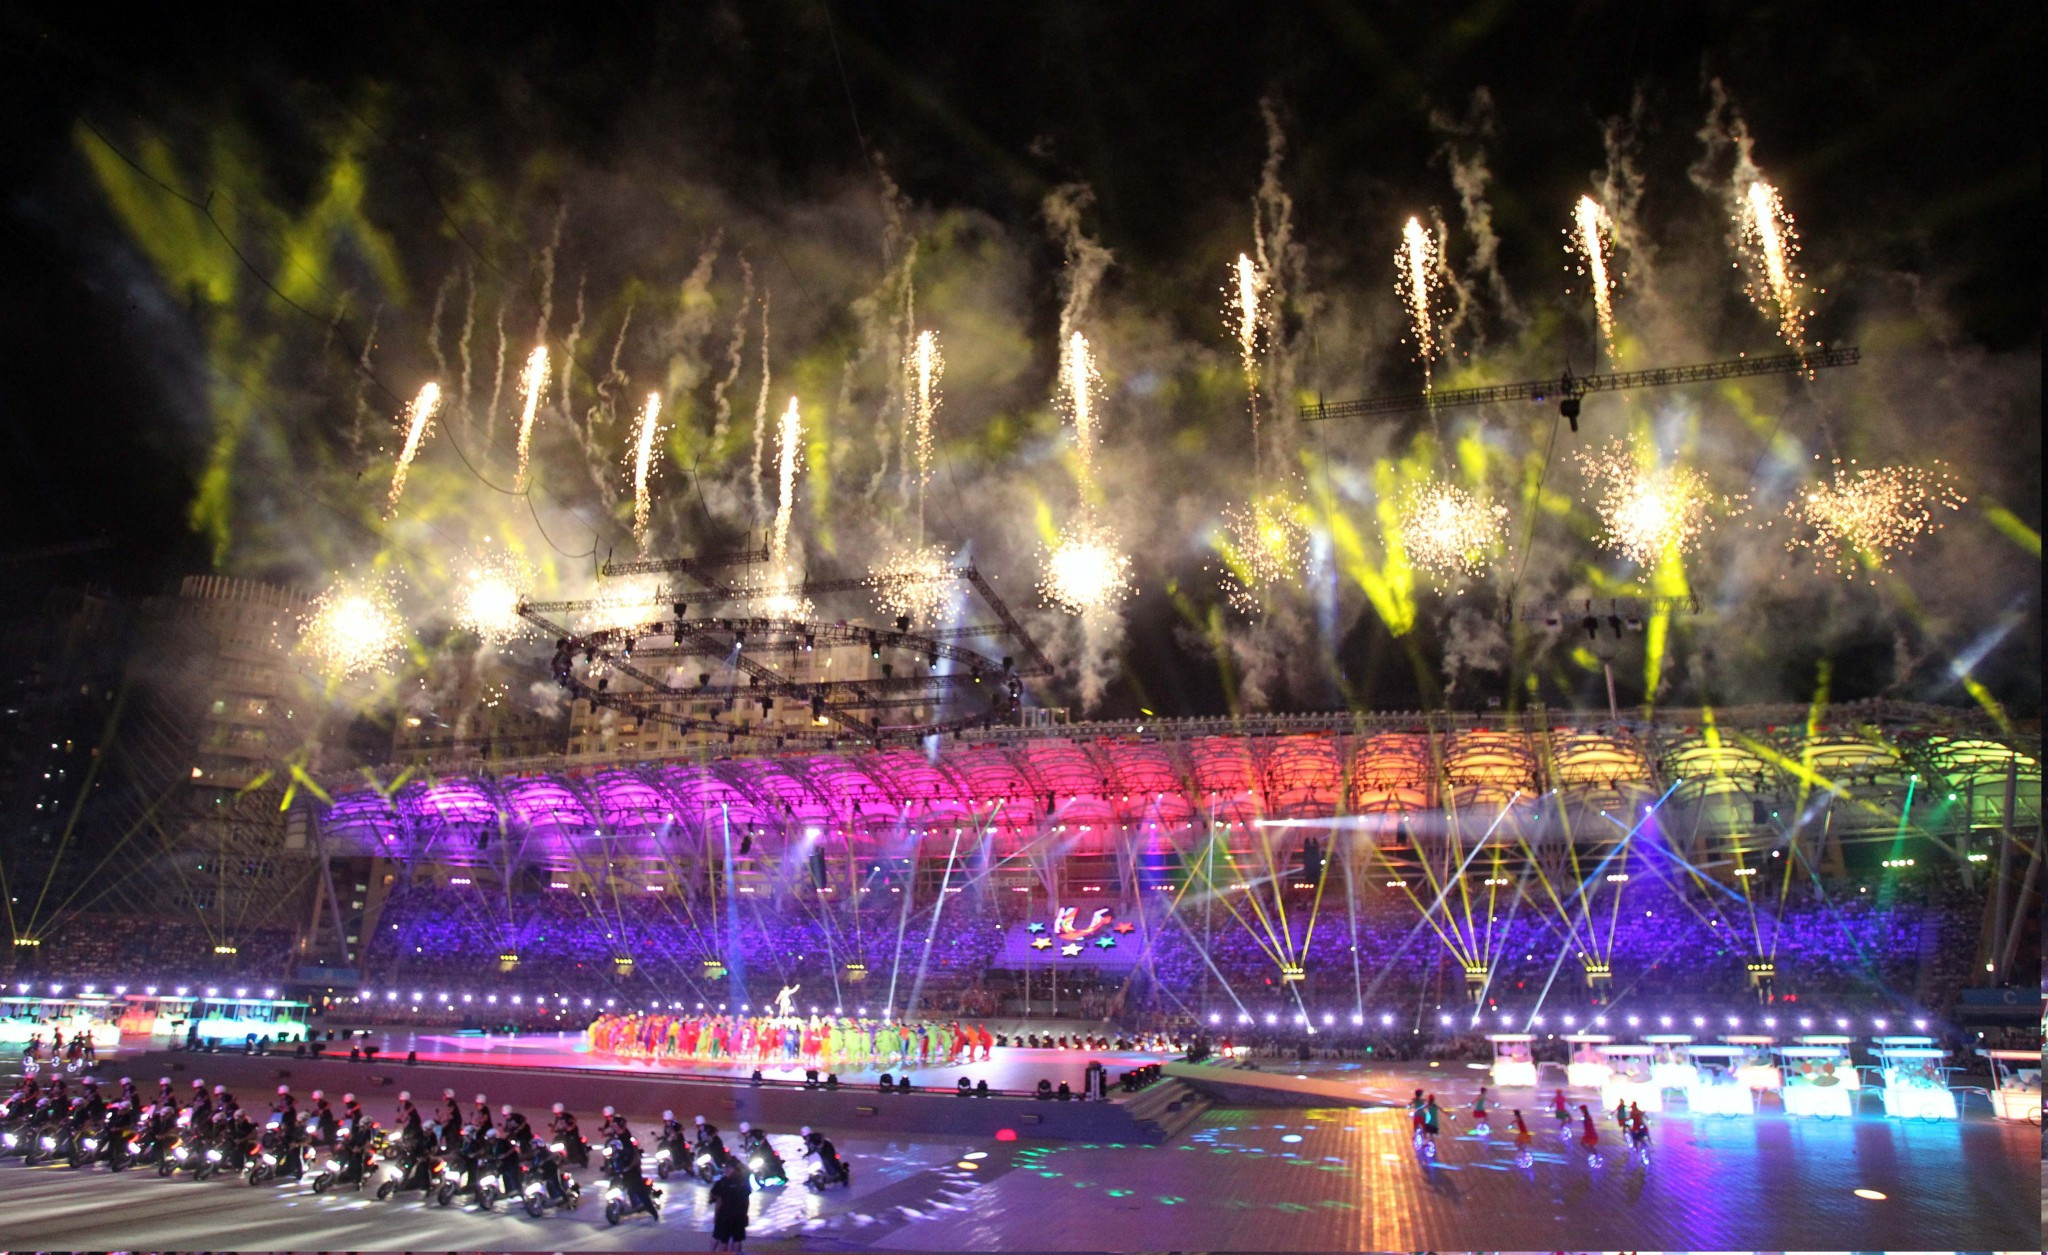 The Taipei 2017 Summer Universiade was officially declared open this evening ©Taipei 2017